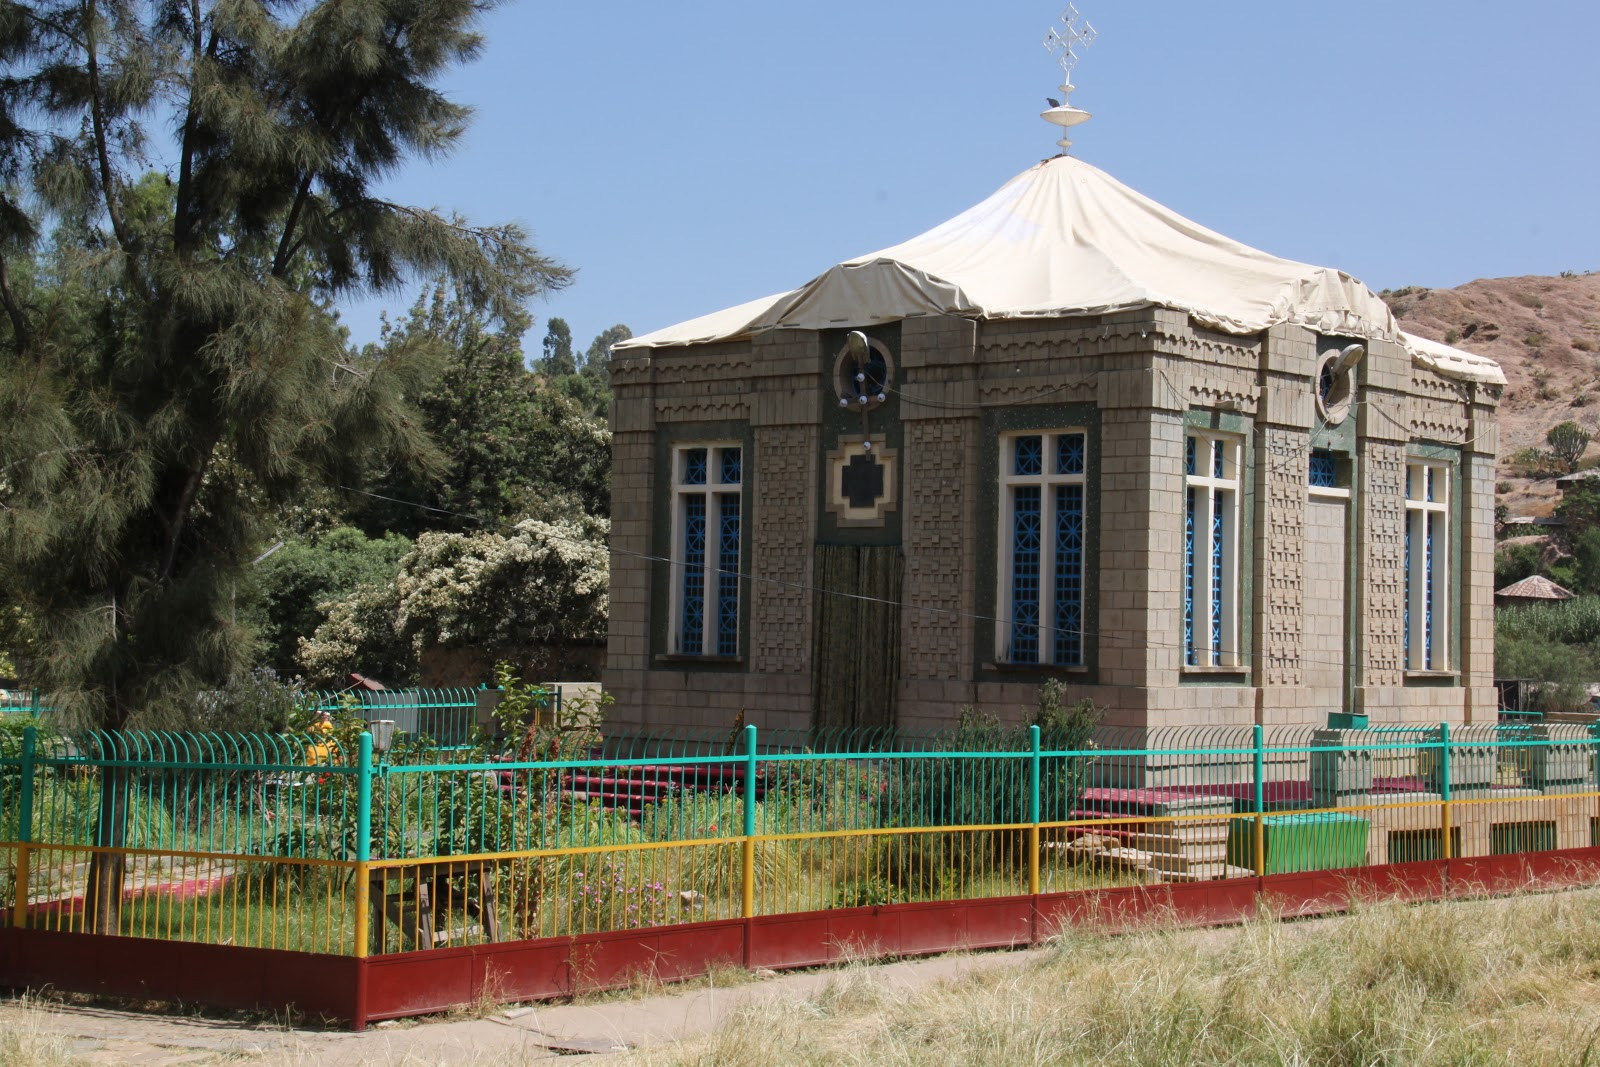 Ark of the Covenant, Ethiopia